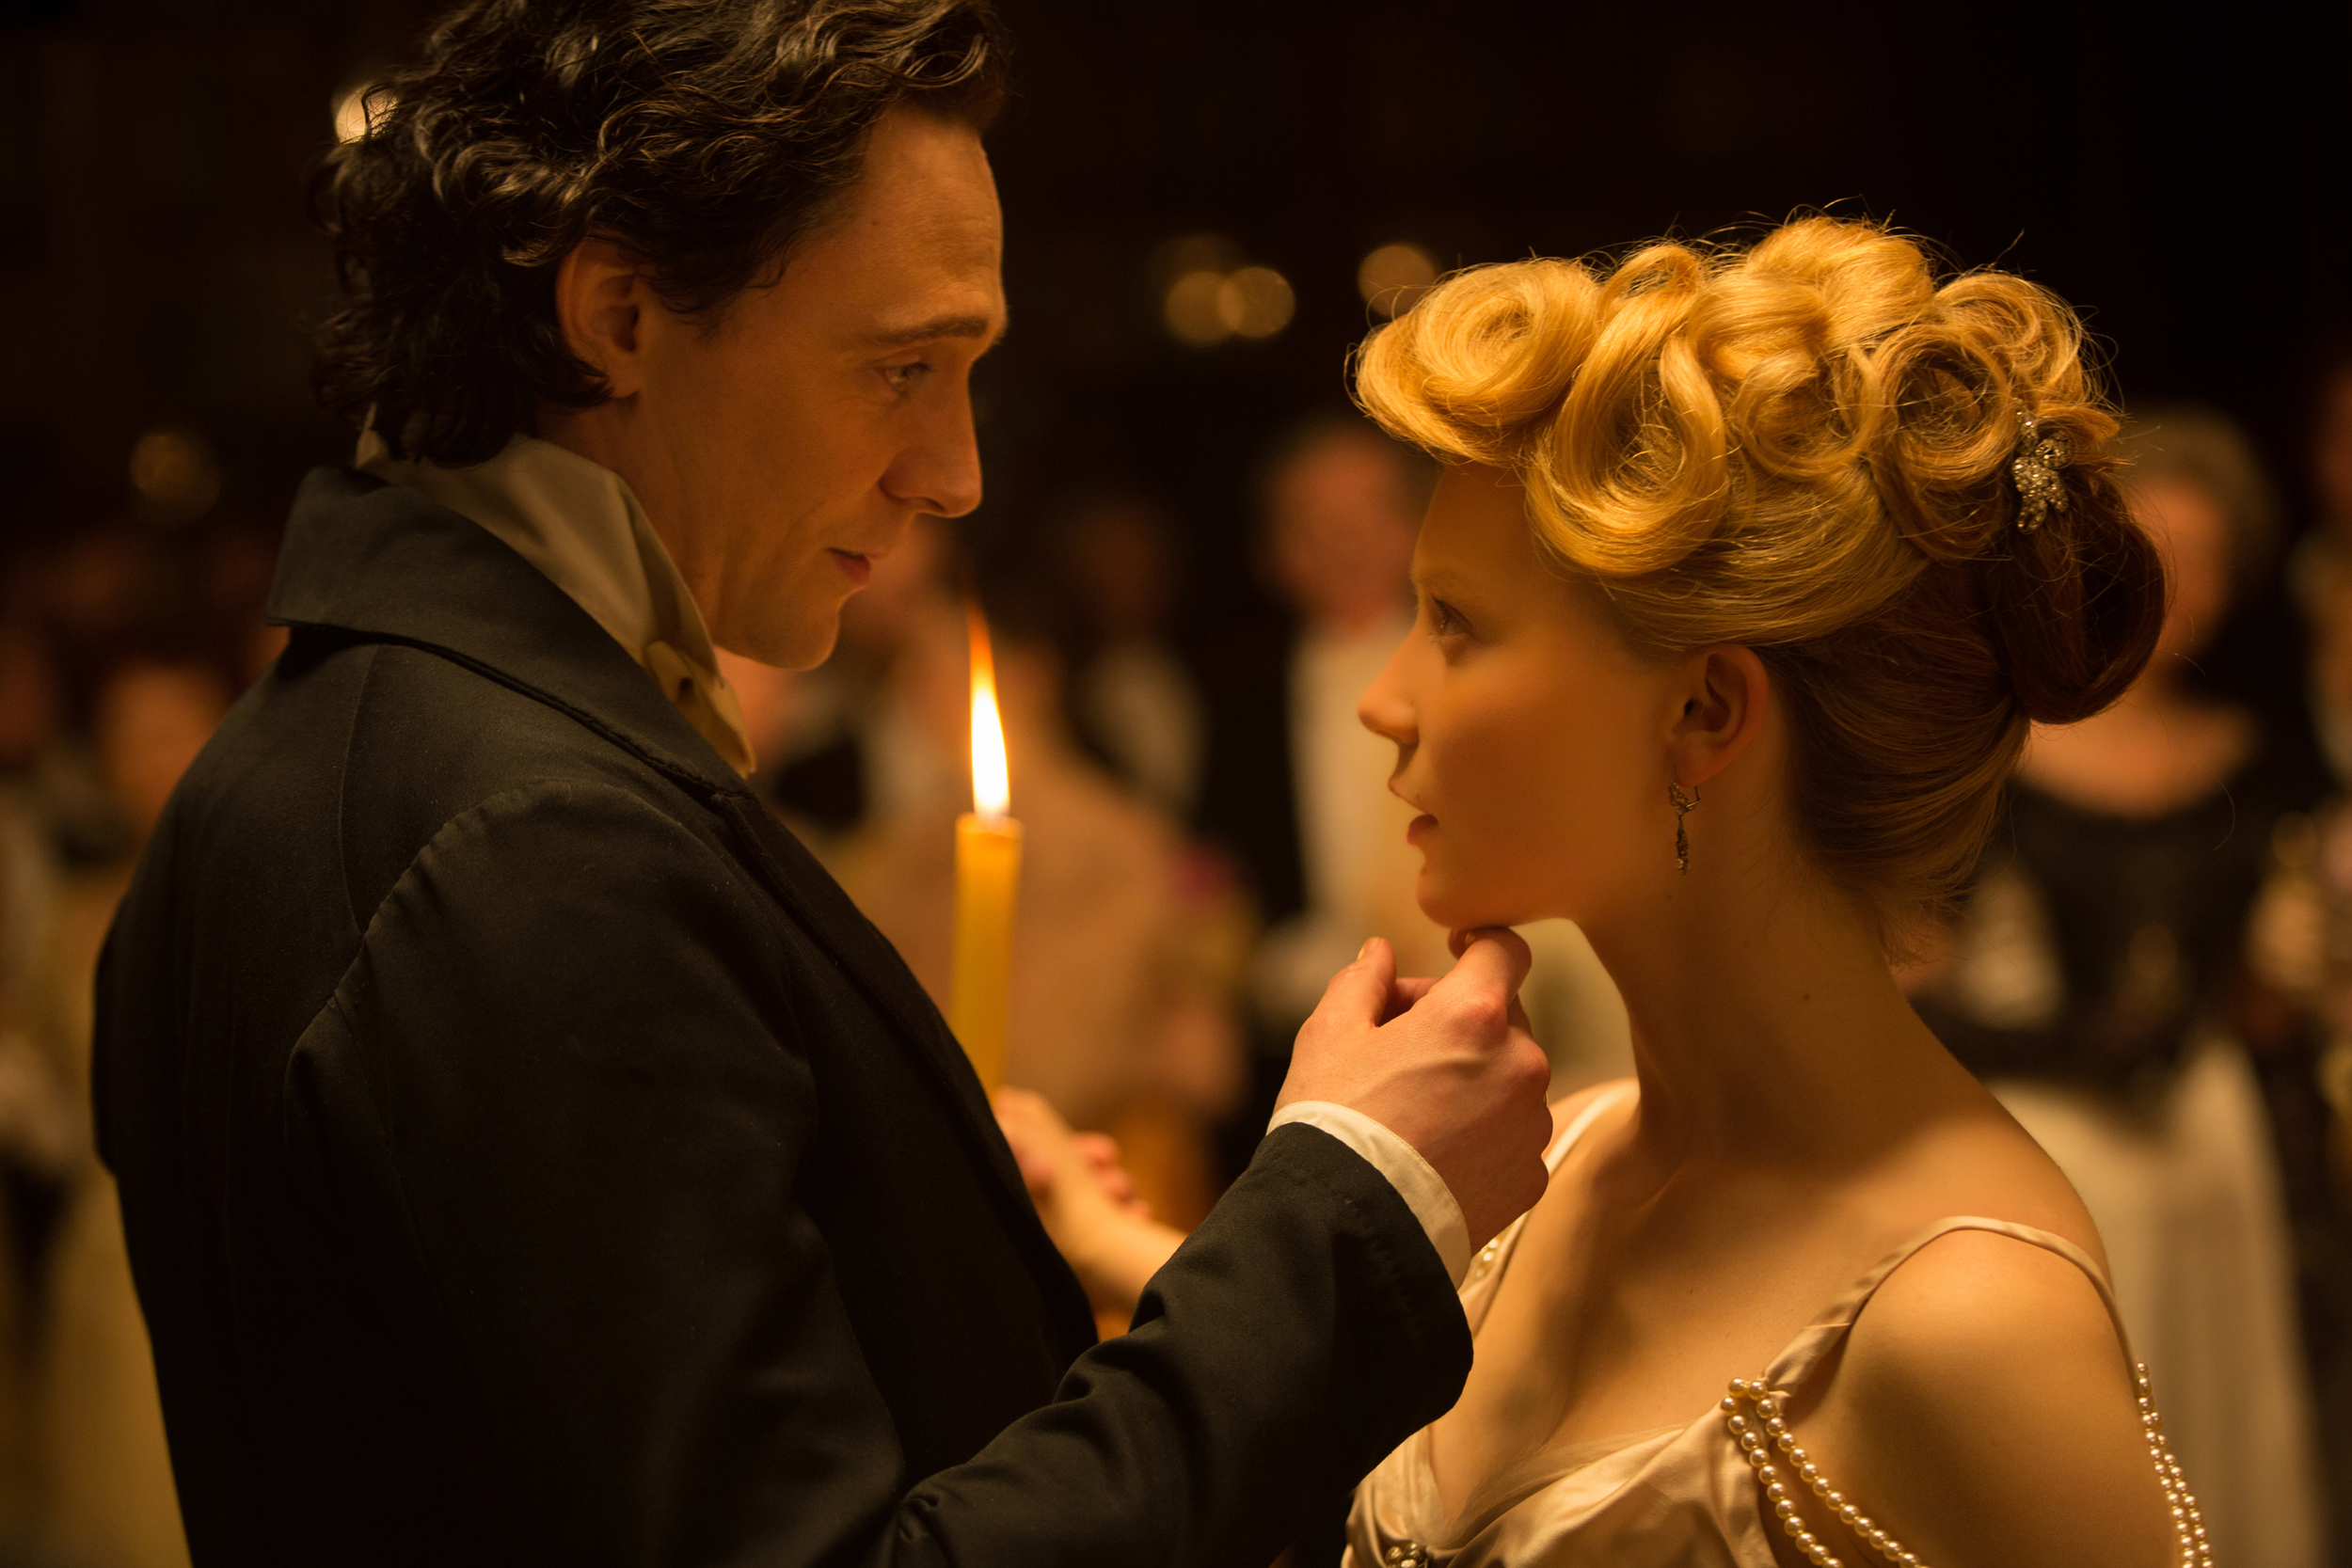 """In this image released by Legendary Pictures and Universal Pictures, Tom Hiddleston, left, and Mia Wasikowska appear in a scene from """" Crimson  Peak ."""" (AP)"""